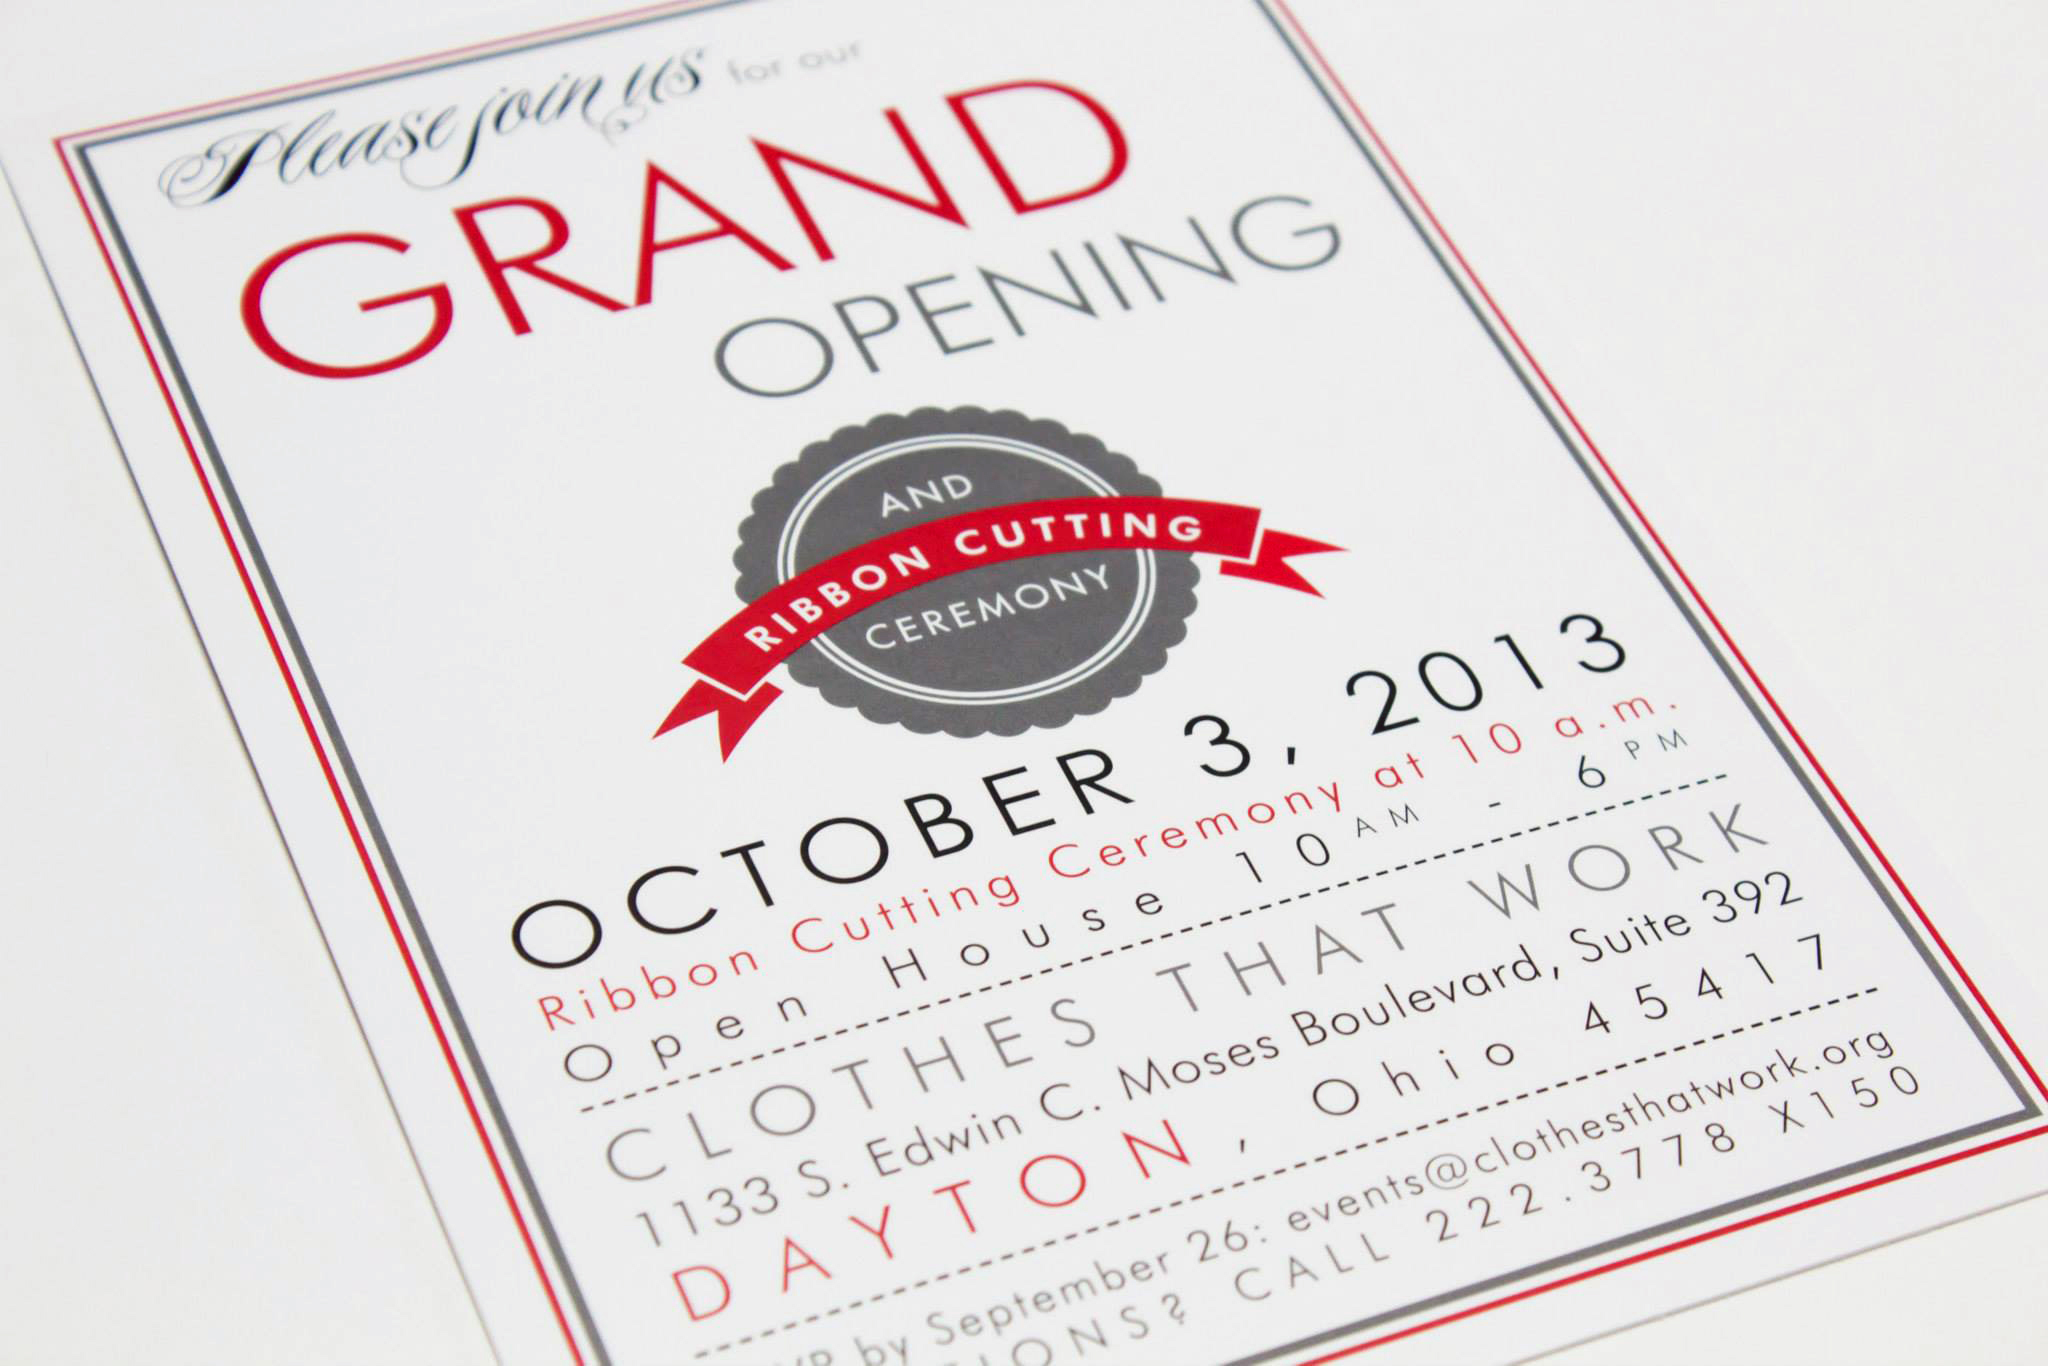 Business Grand Opening Invitation Wording as perfect invitations example